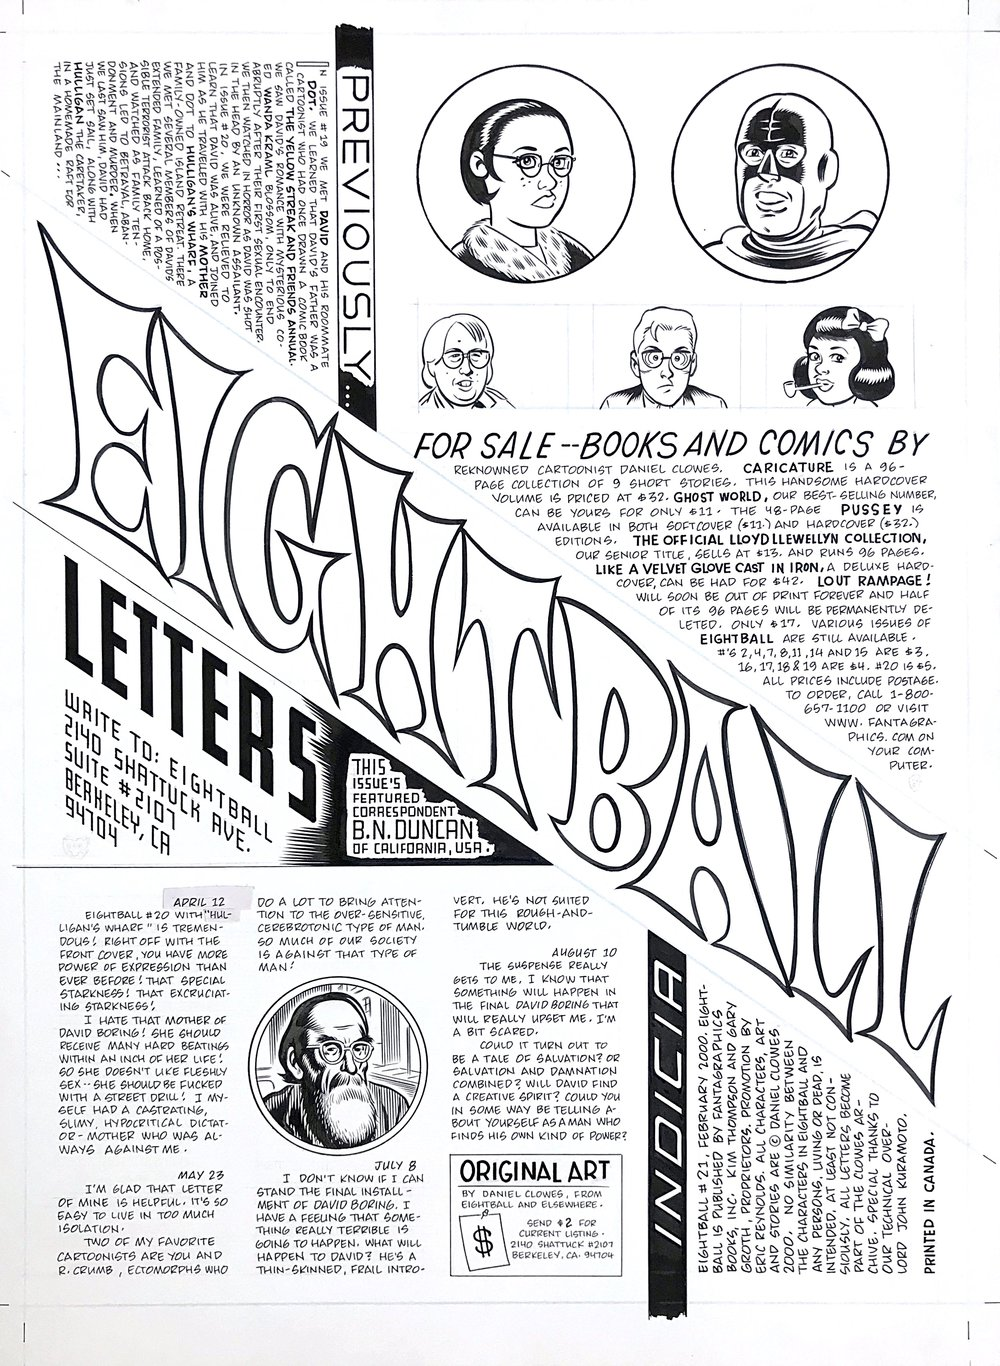 EIGHTBALL LETTERS PAGE